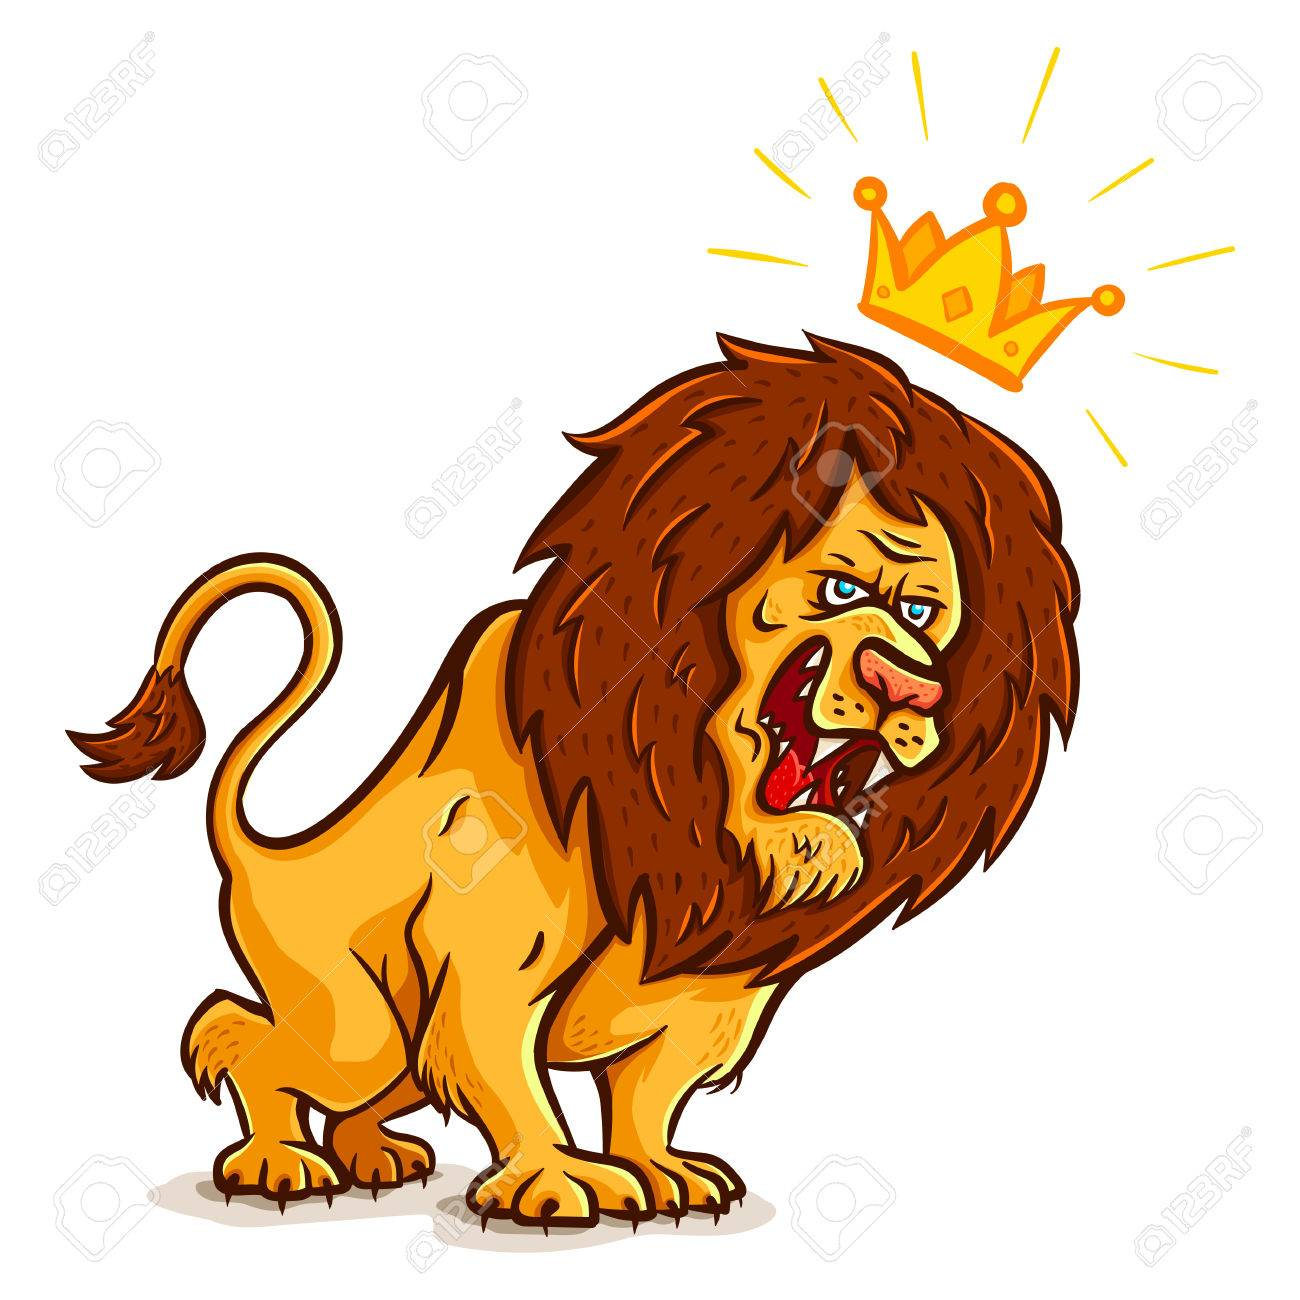 vector illustration of an angry lion with crown royalty free rh 123rf com vector lion fish vector lion fish free